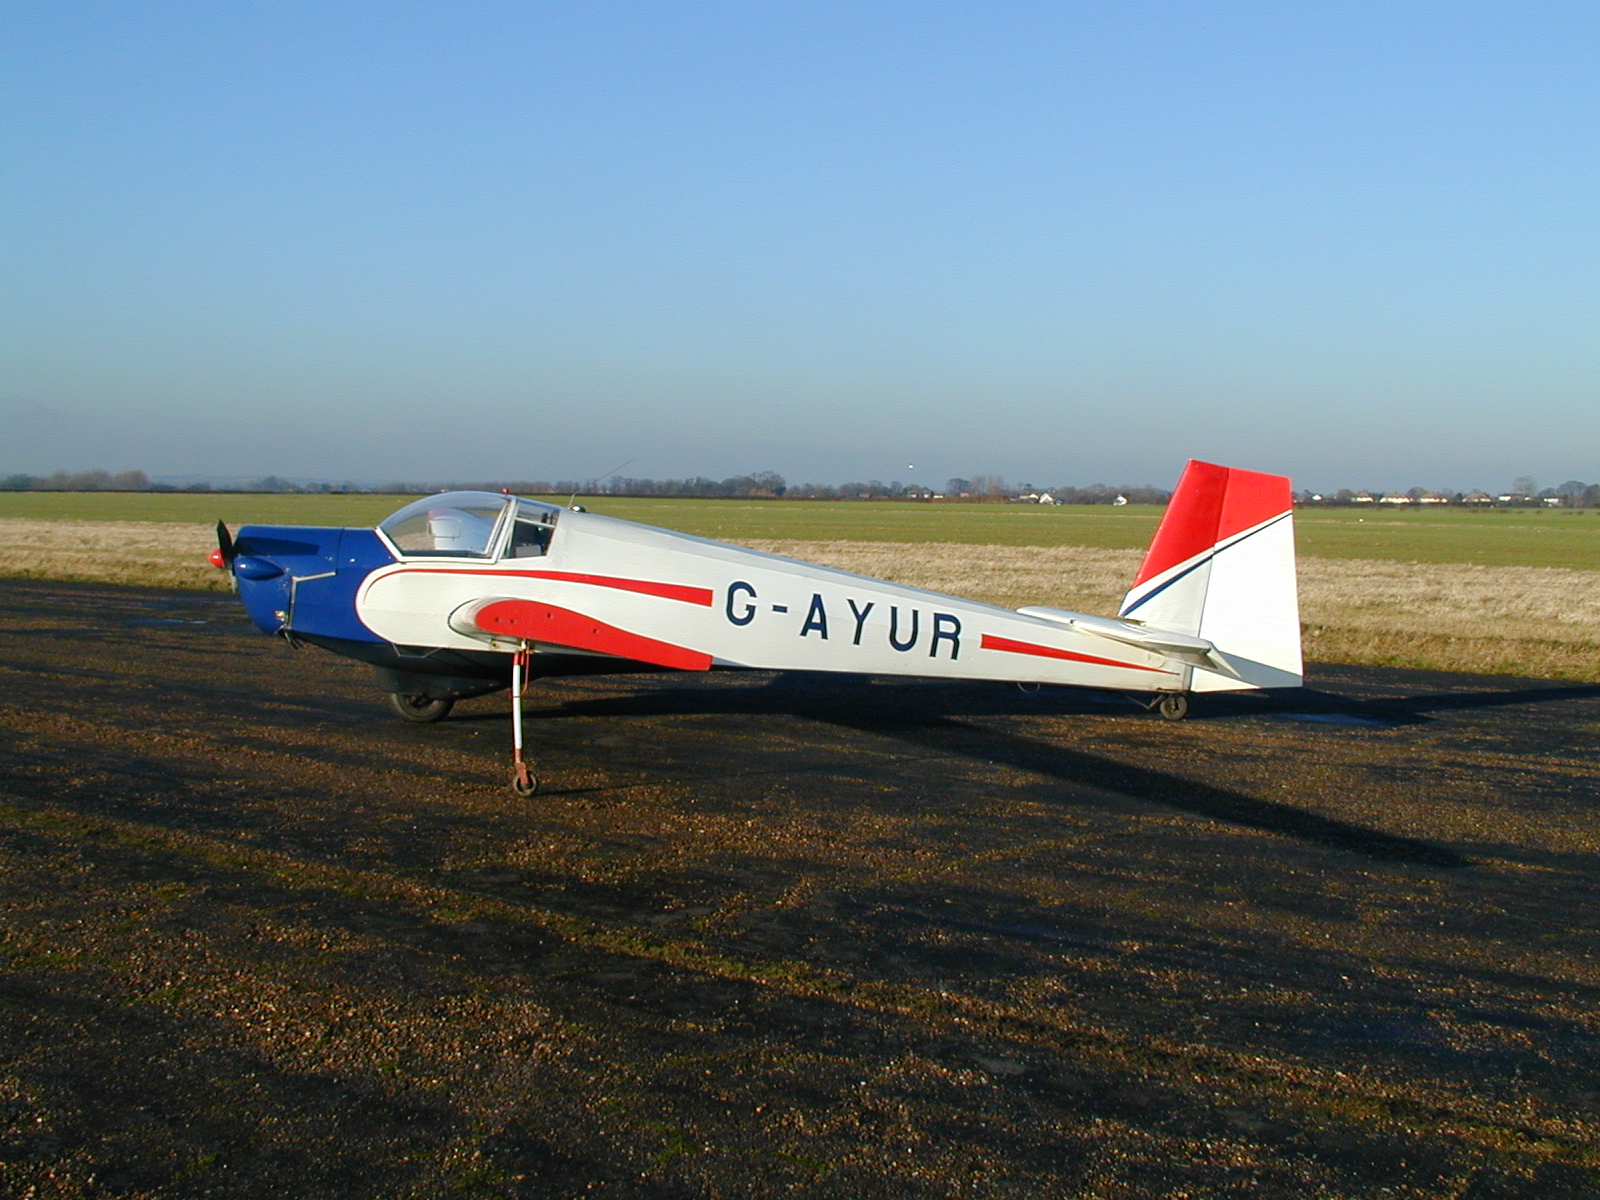 Slingsby T61a Motor Glider for sale